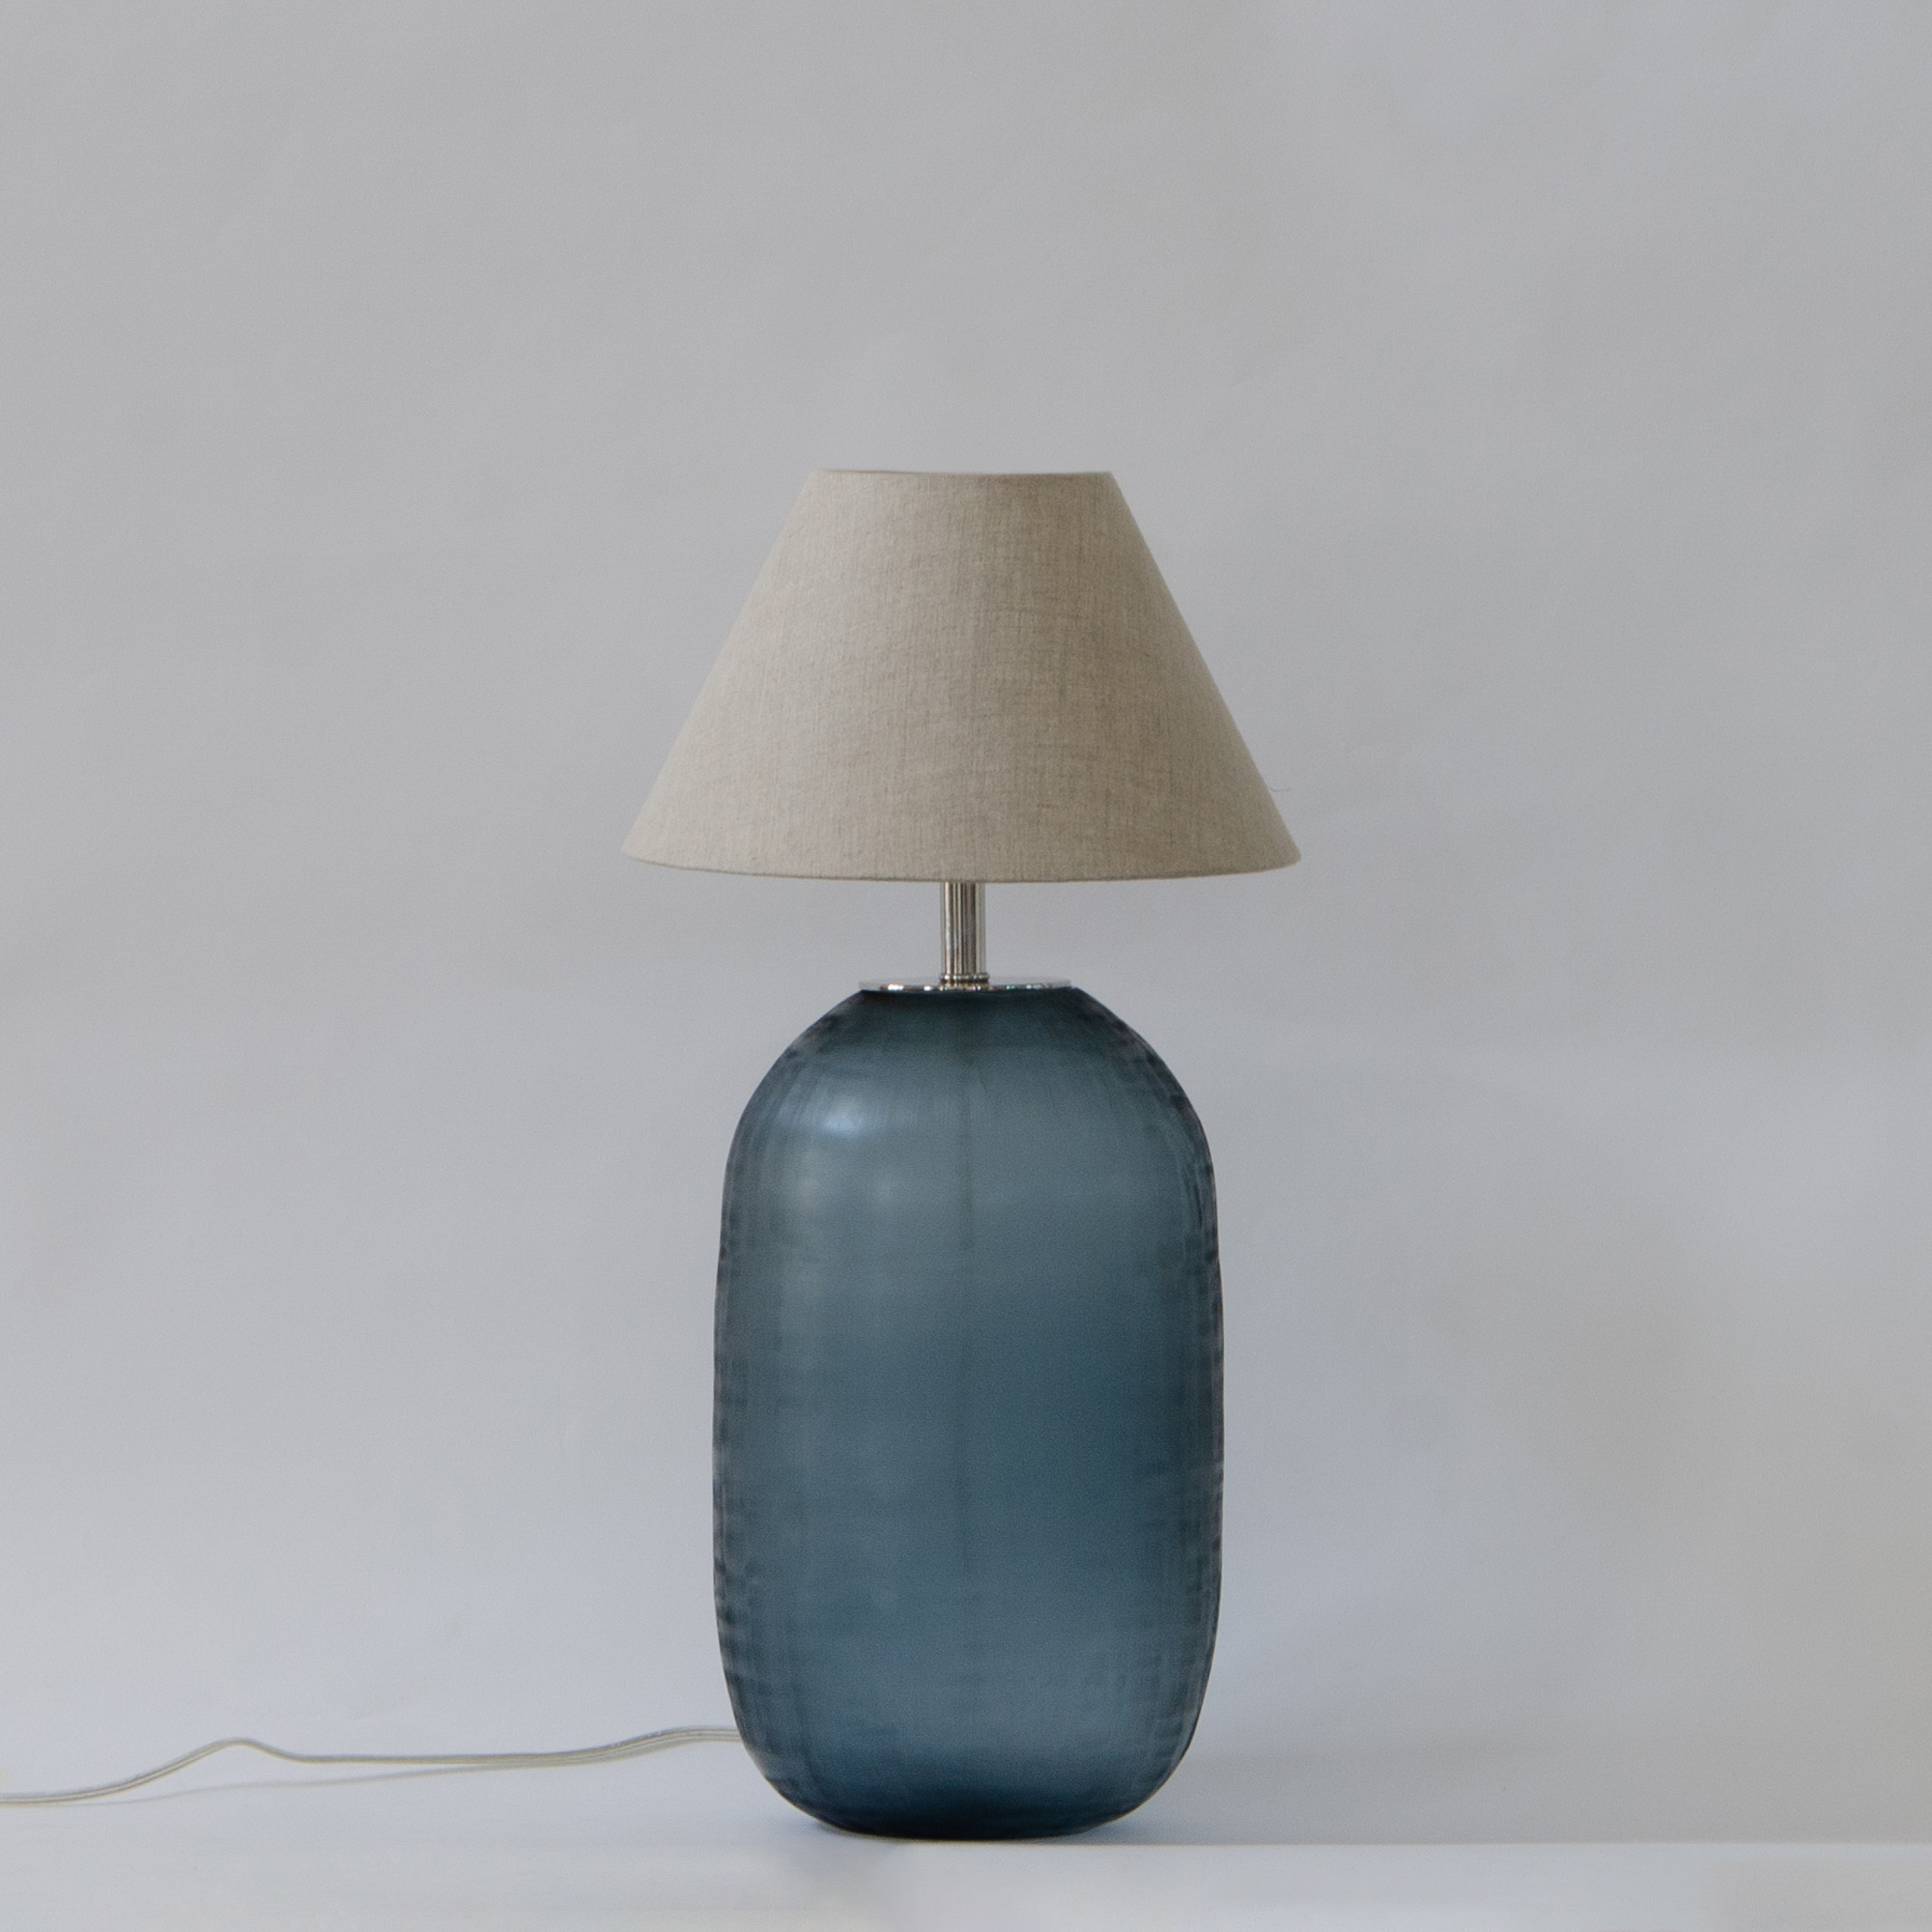 Mellow Glass Lamp Stand - Teal